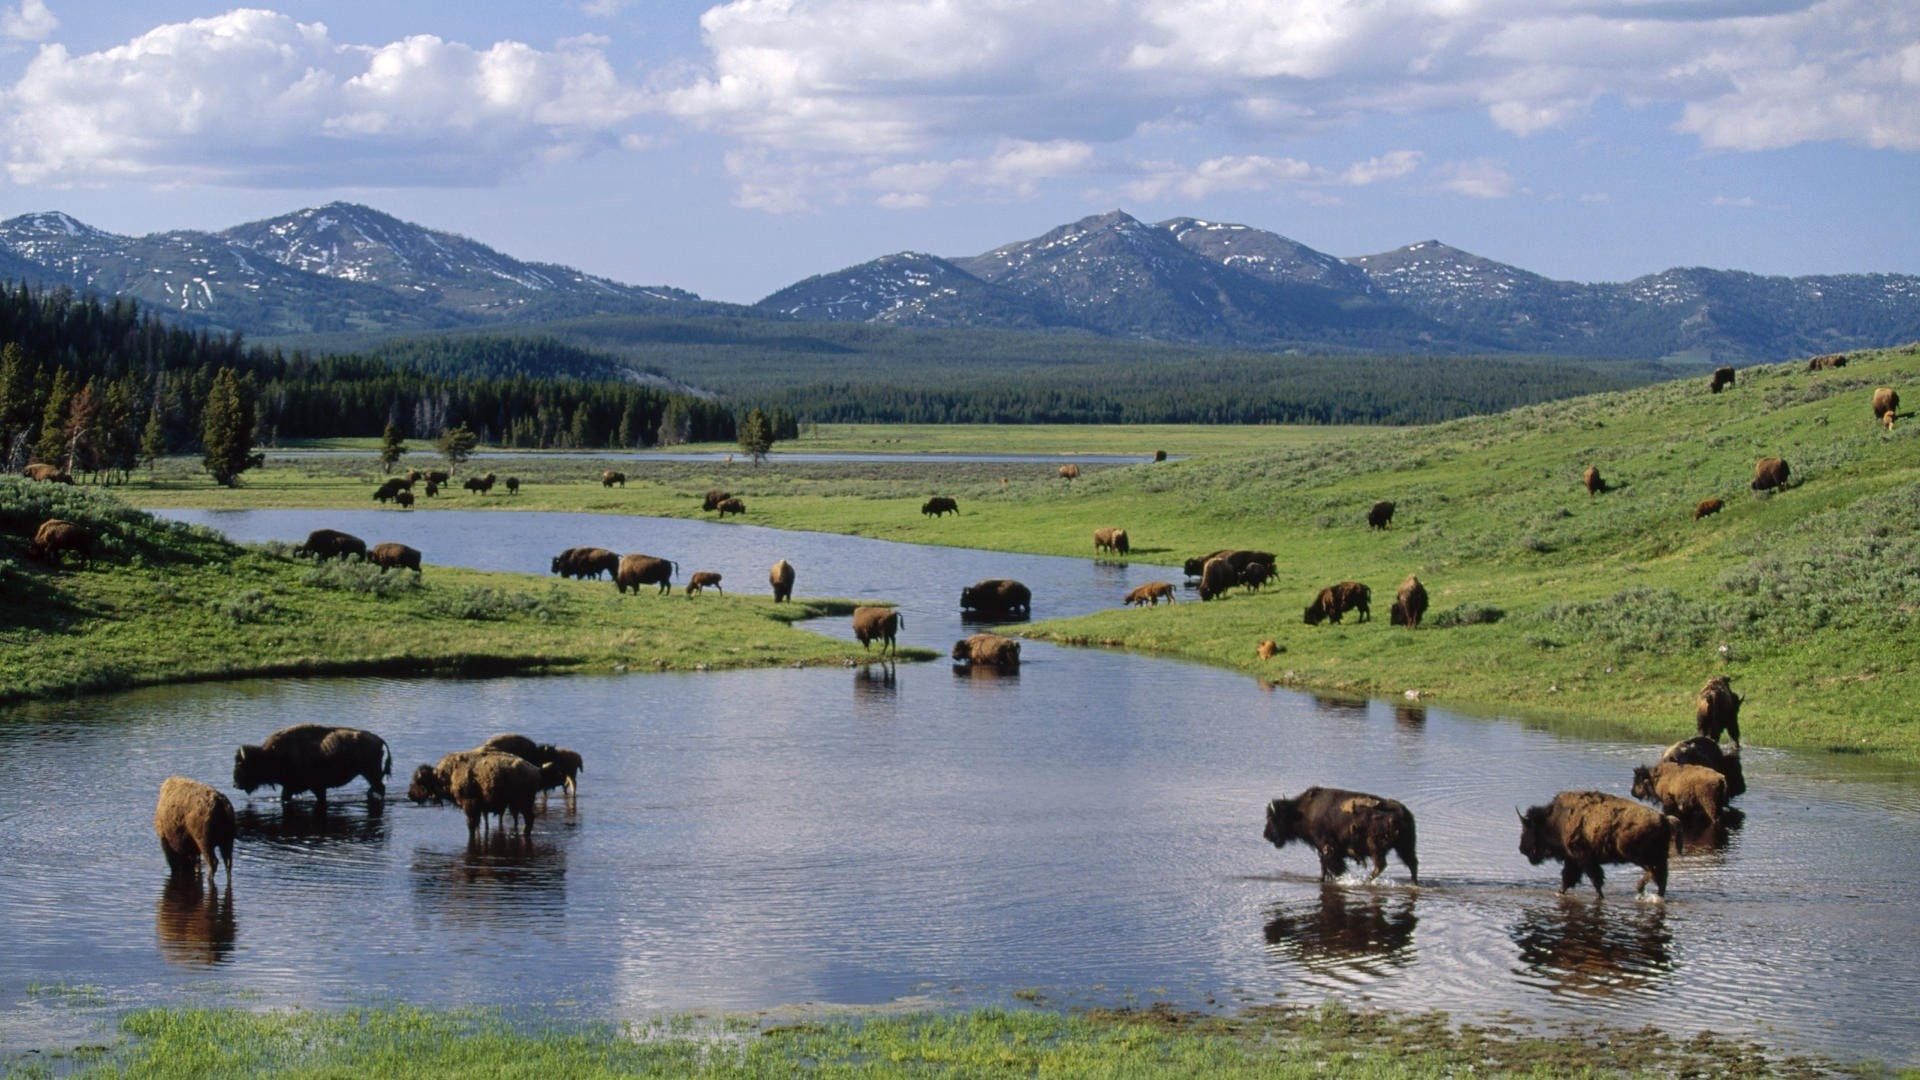 1920x1080 bison, views, background,free images, yellowstone park, windows backgrounds,  cool, wyoming,american, national Wallpaper HD